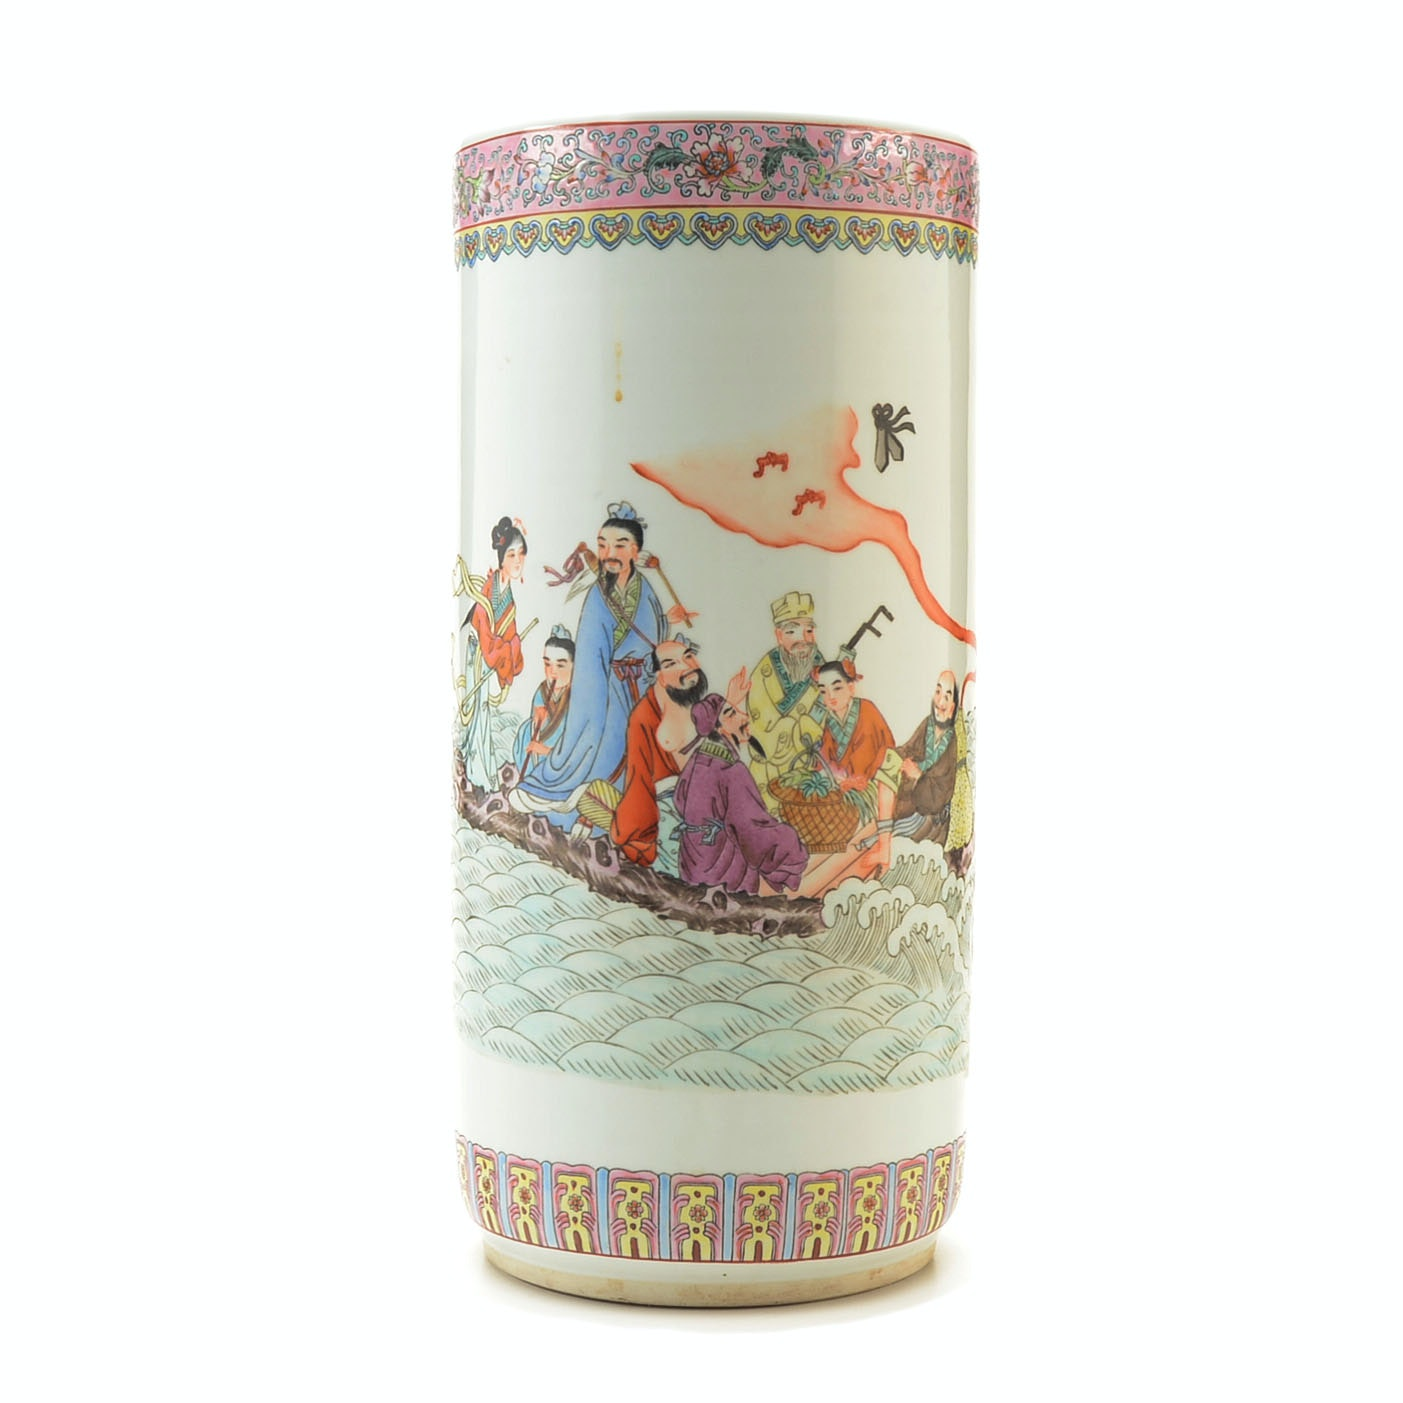 Chinese Porcelain Umbrella Holder with the Daoist Eight Immortals